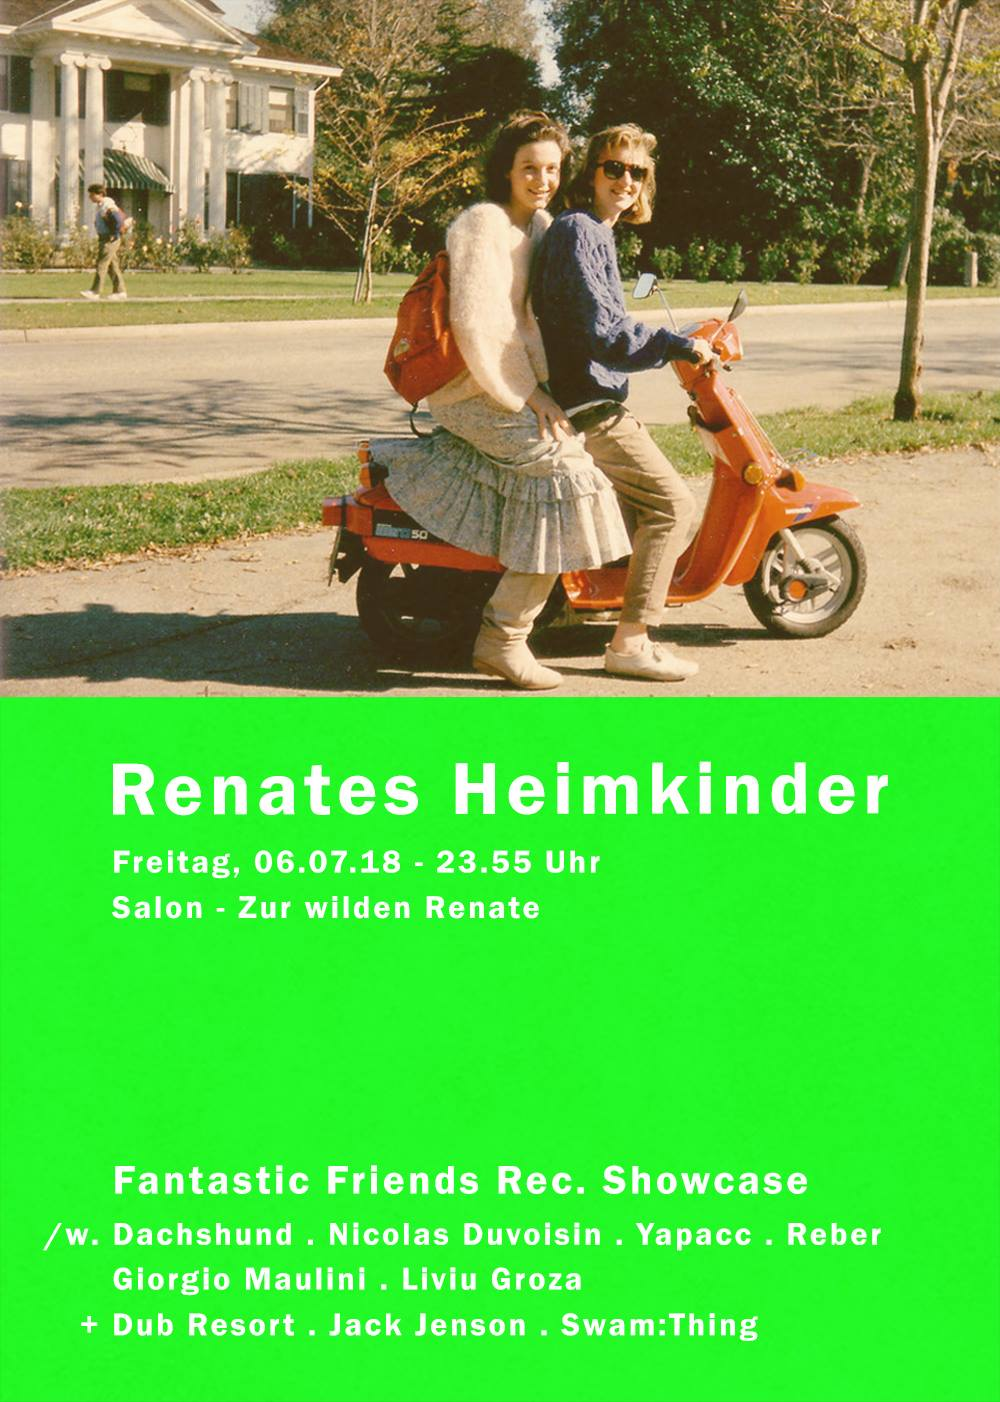 renates meet fantastic friends for a 12h dj of the label